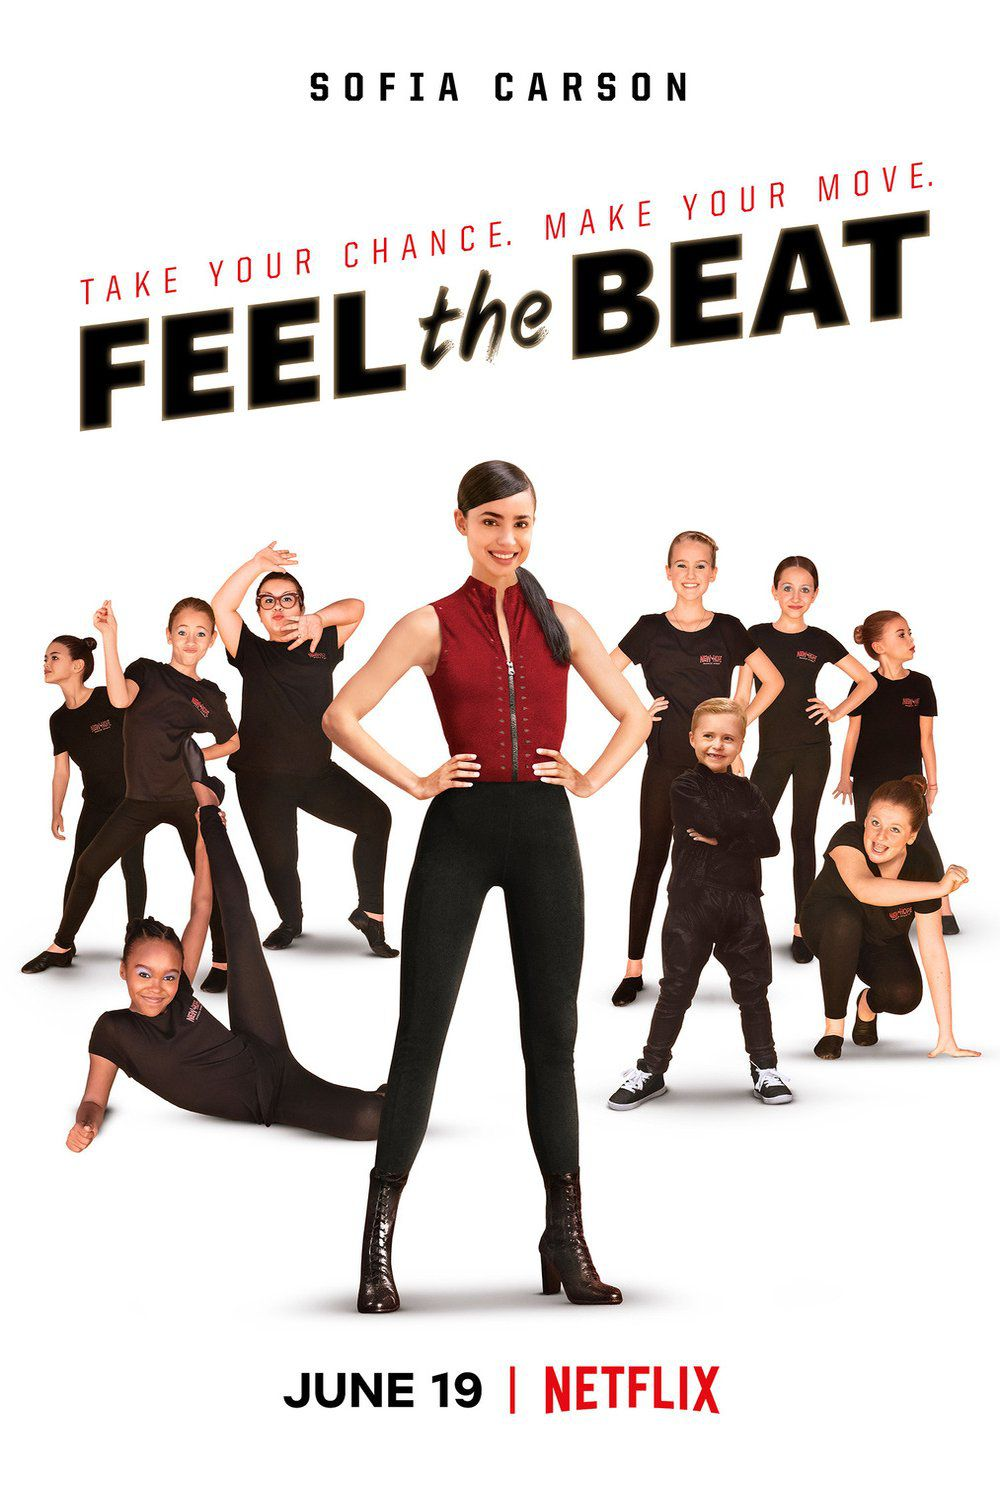 Bande-annonce du film Feel the Beat, avec Sofia Carson.